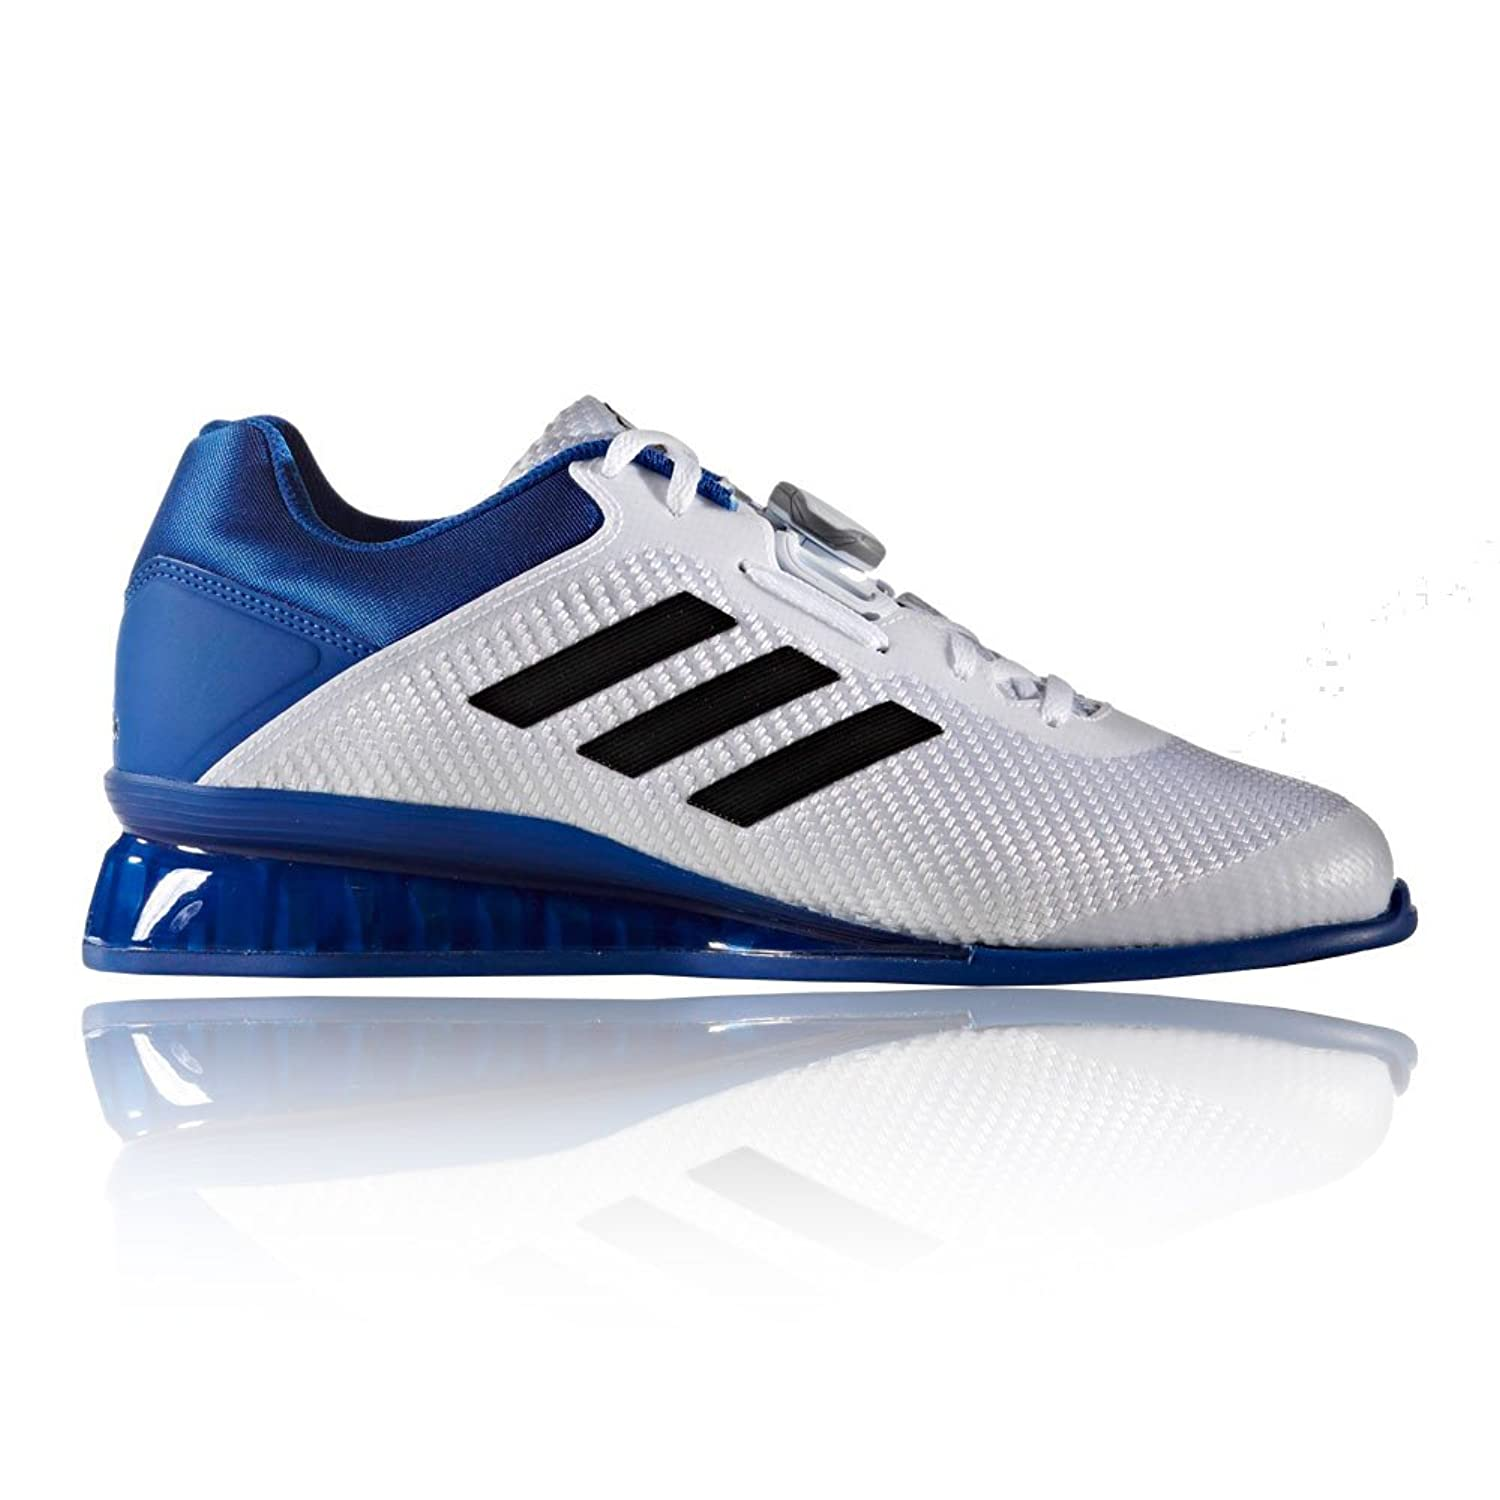 adidas Leistung 16 II Weightlifting Shoes - SS18: Amazon.co.uk: Shoes & Bags